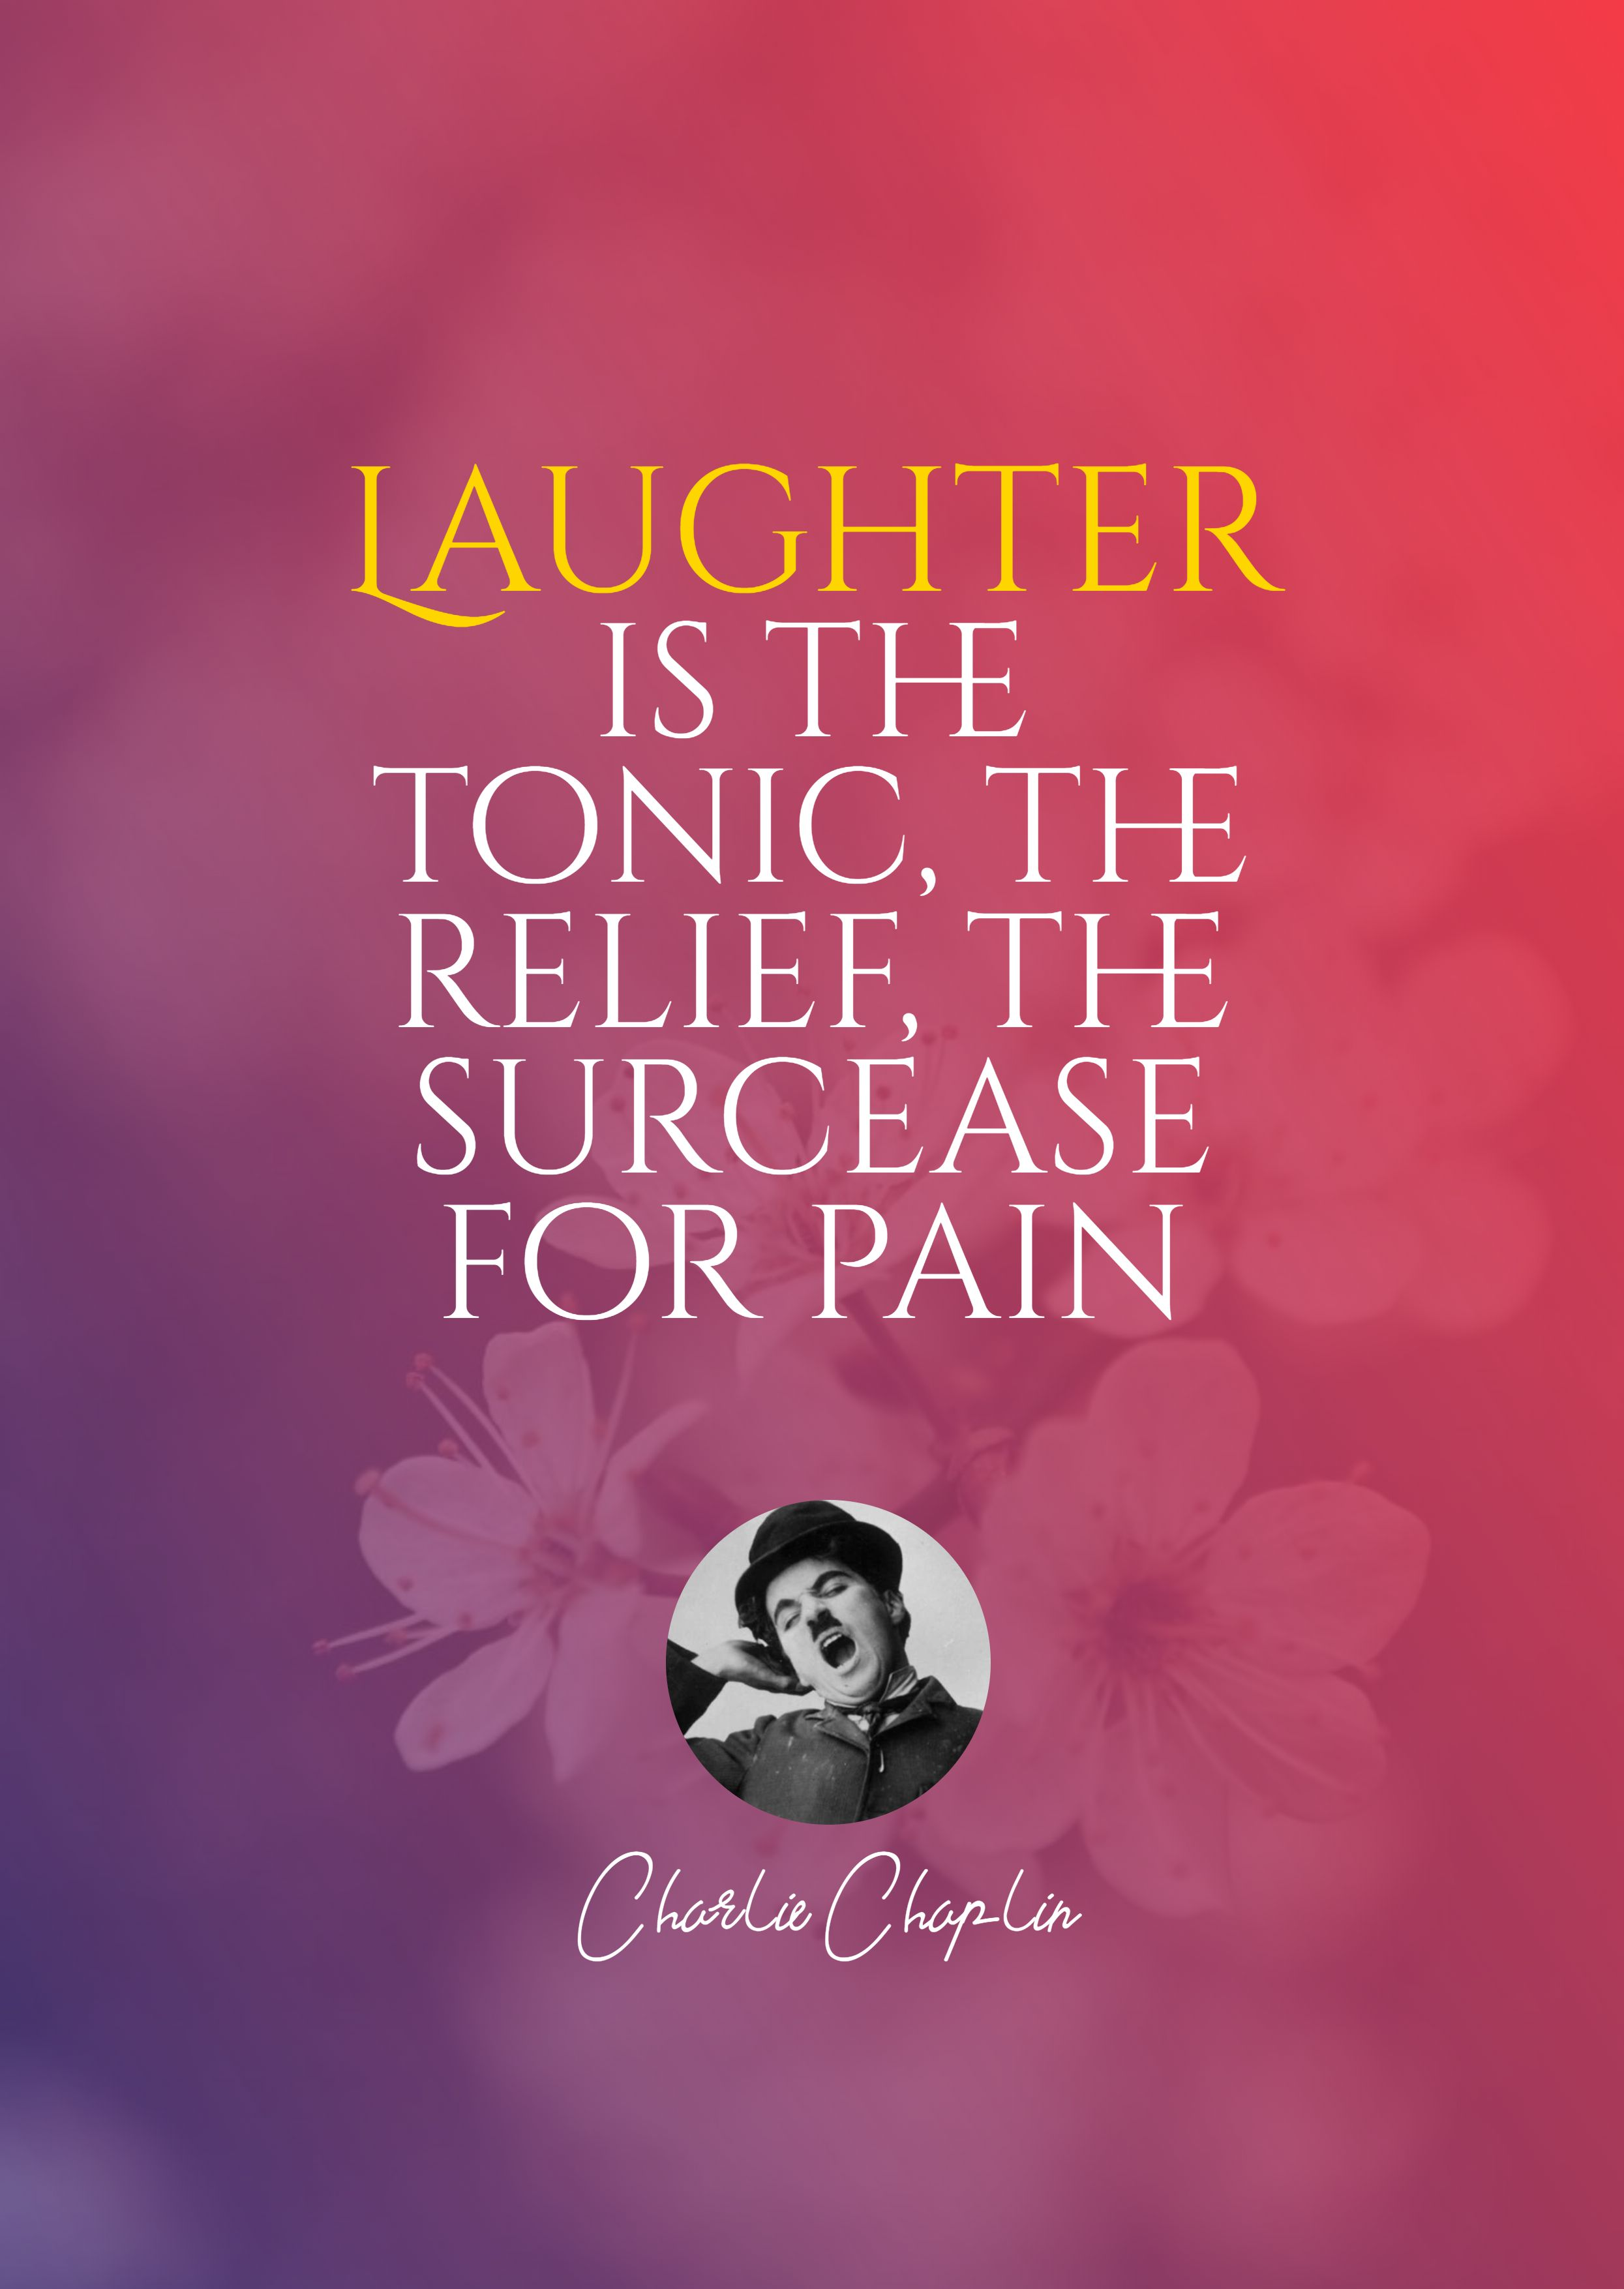 Quotes image of Laughter is the tonic, the relief, the surcease for pain